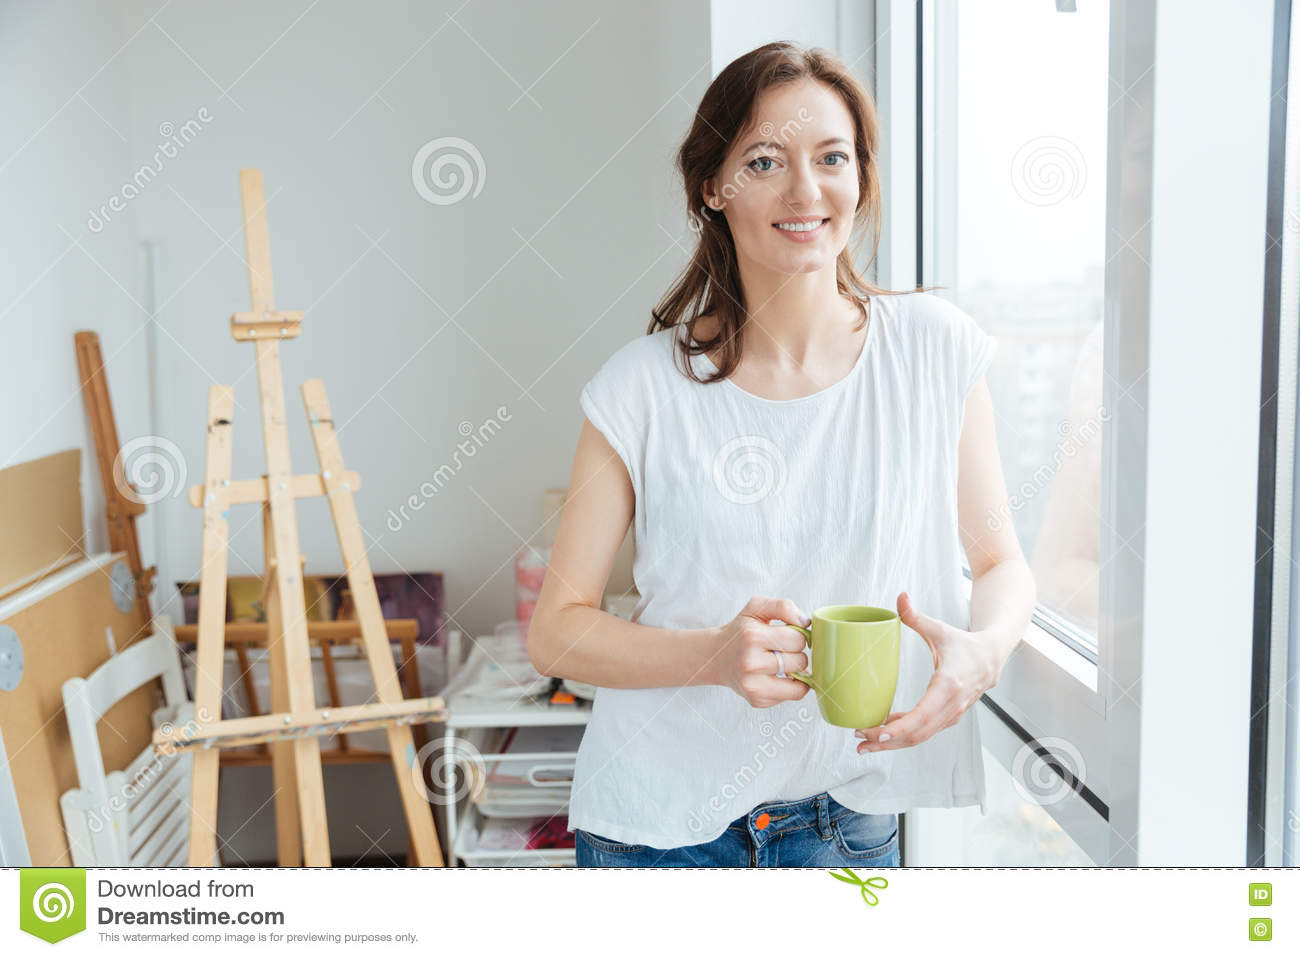 Pretty cheerful young woman painter painting in art studio for Painting studios near me